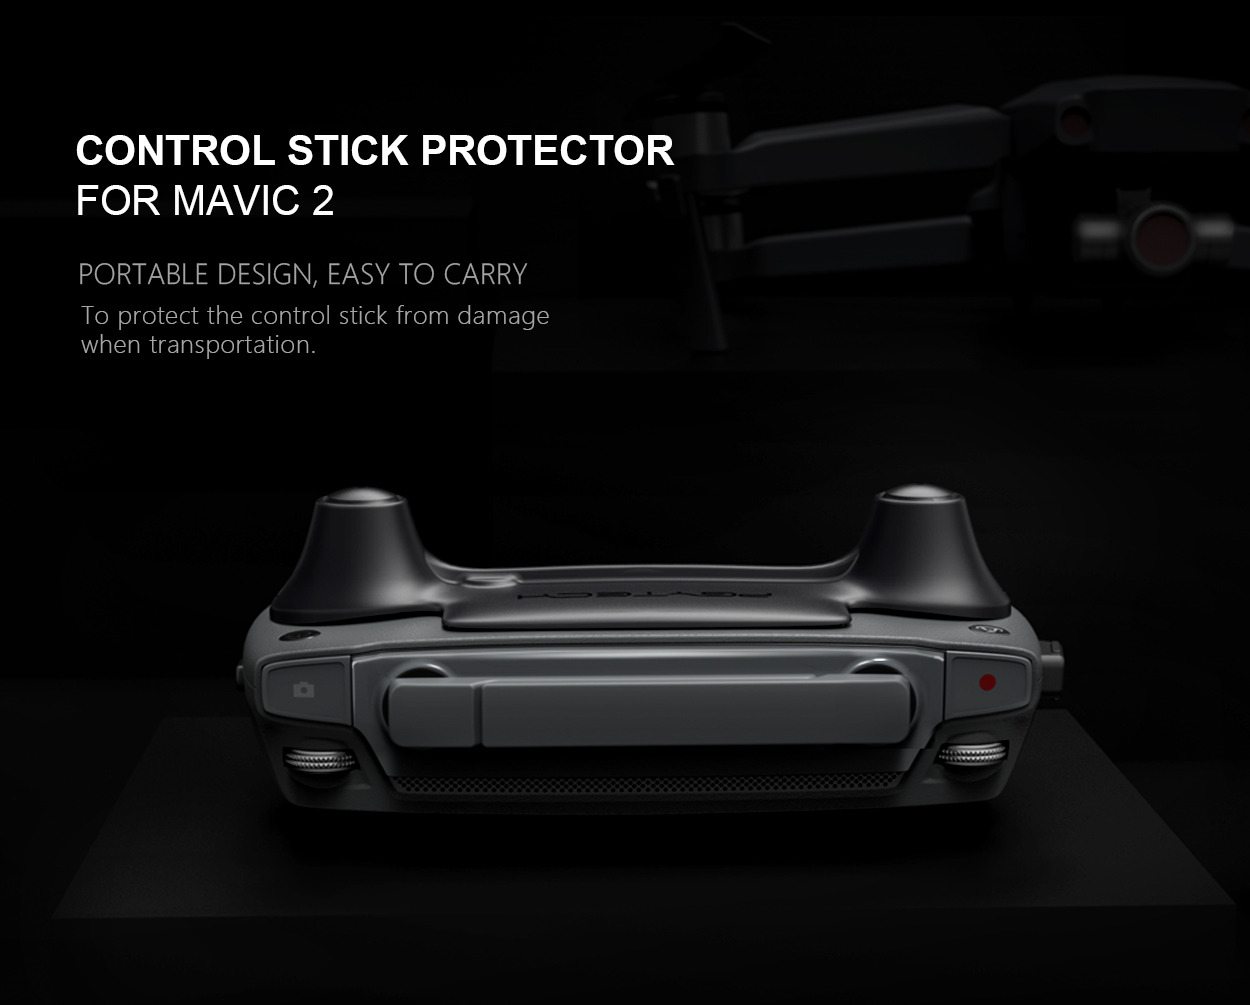 CONTROL STICK PROTECTOR FOR MAVIC 2 | PORTABLE DESIGN, EASY TO CARRY - To protect the control stick from damage when transportation.